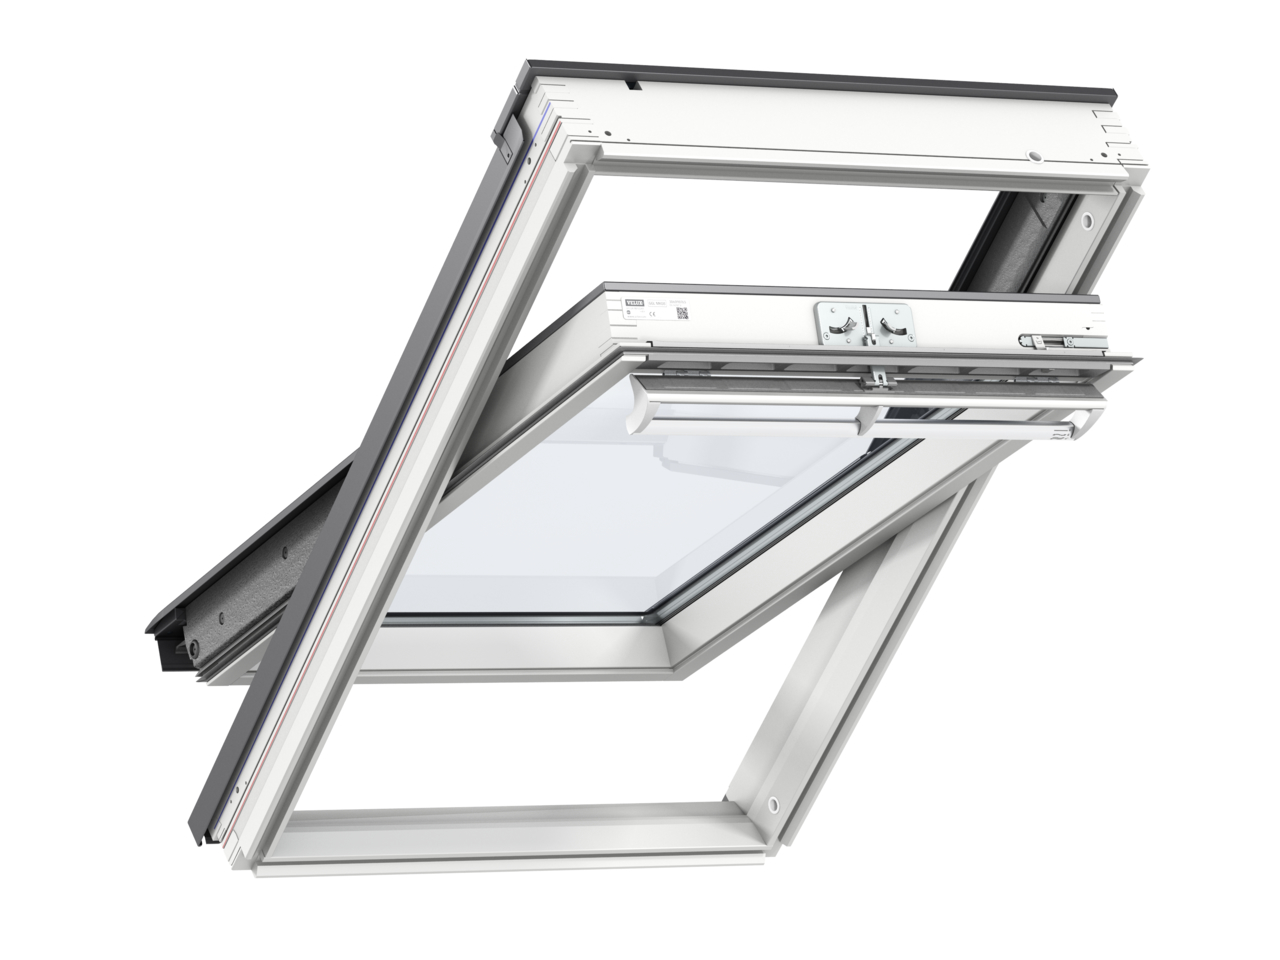 Velux GGL UK04 1340 x 980mm Centre Pivot 60Pane Roof Window - White Painted